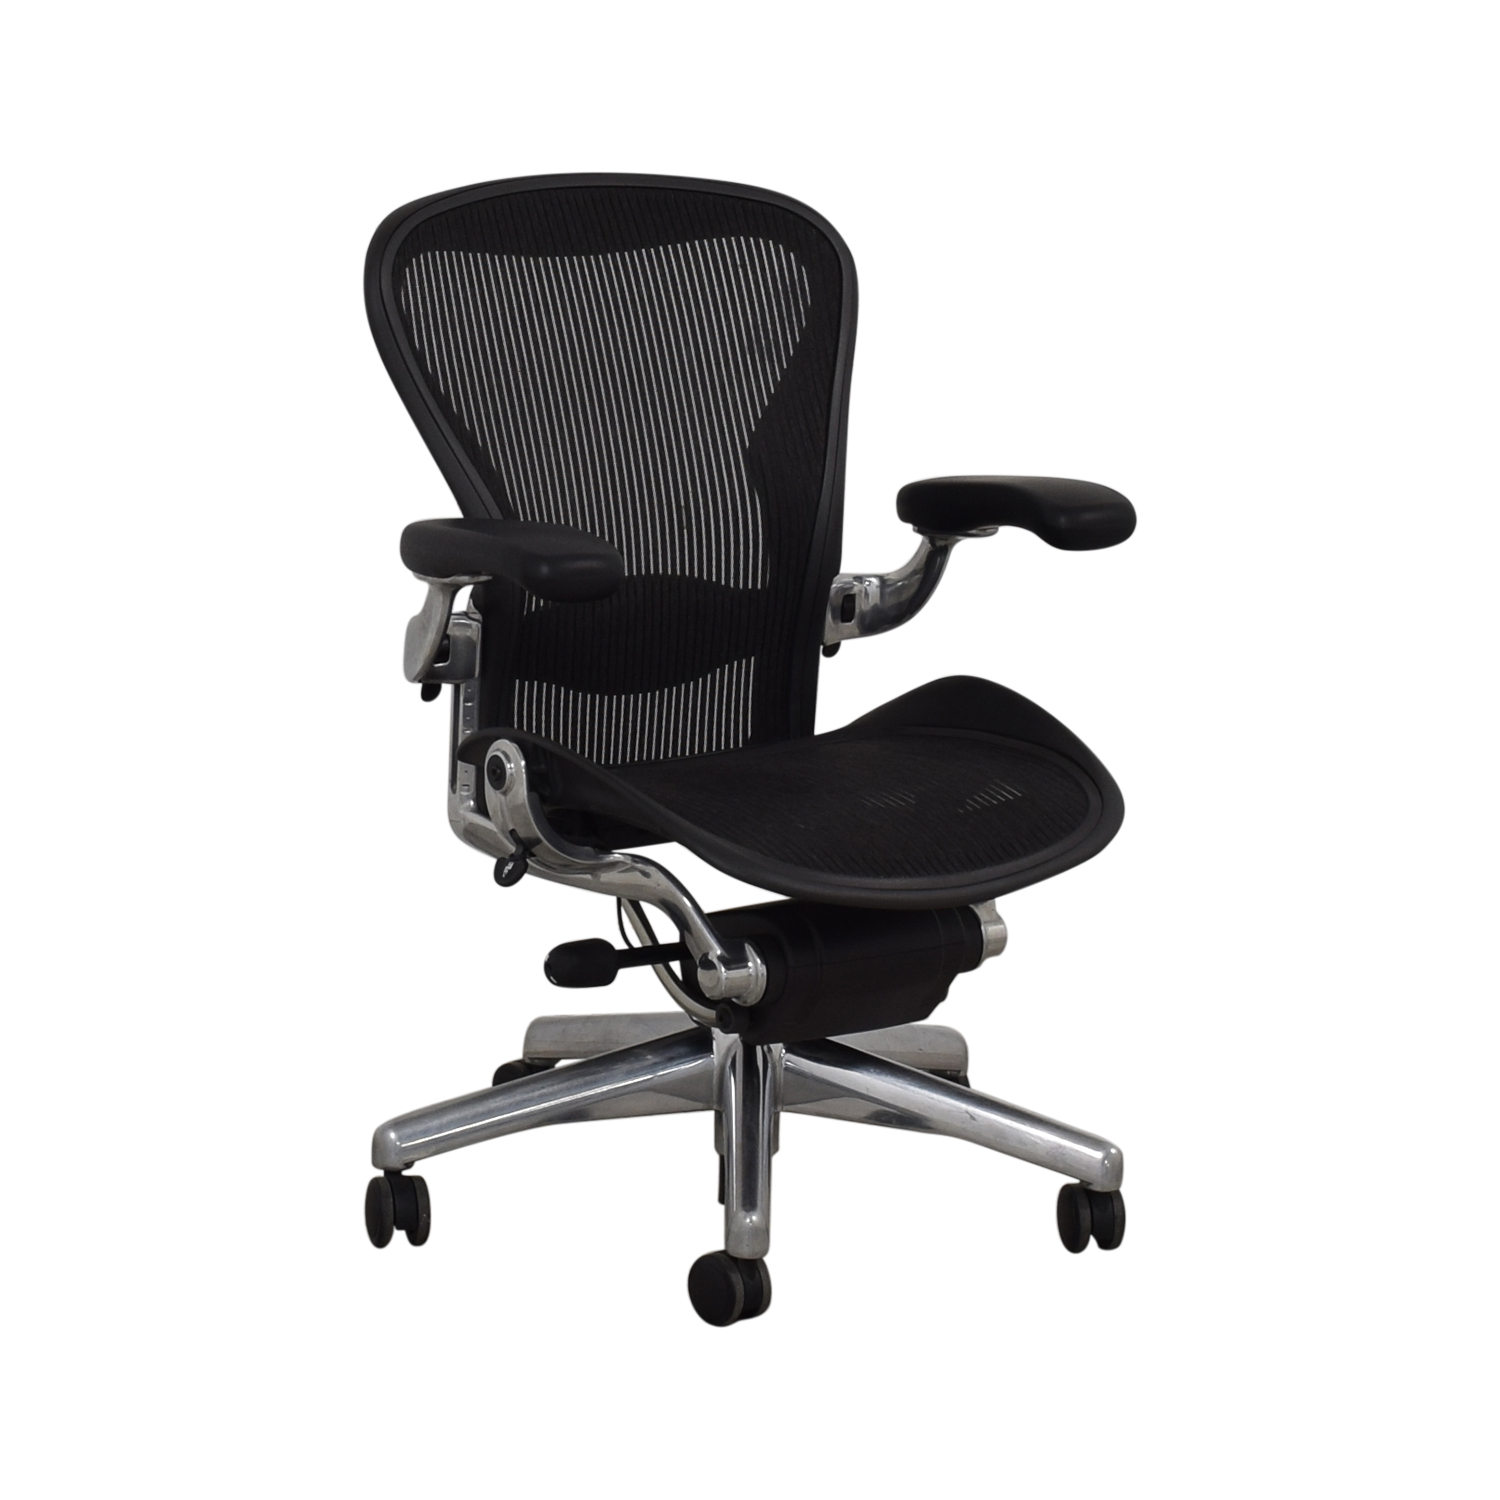 Herman Miller Herman Miller Aeron Size B Black Office Desk Chair Home Office Chairs